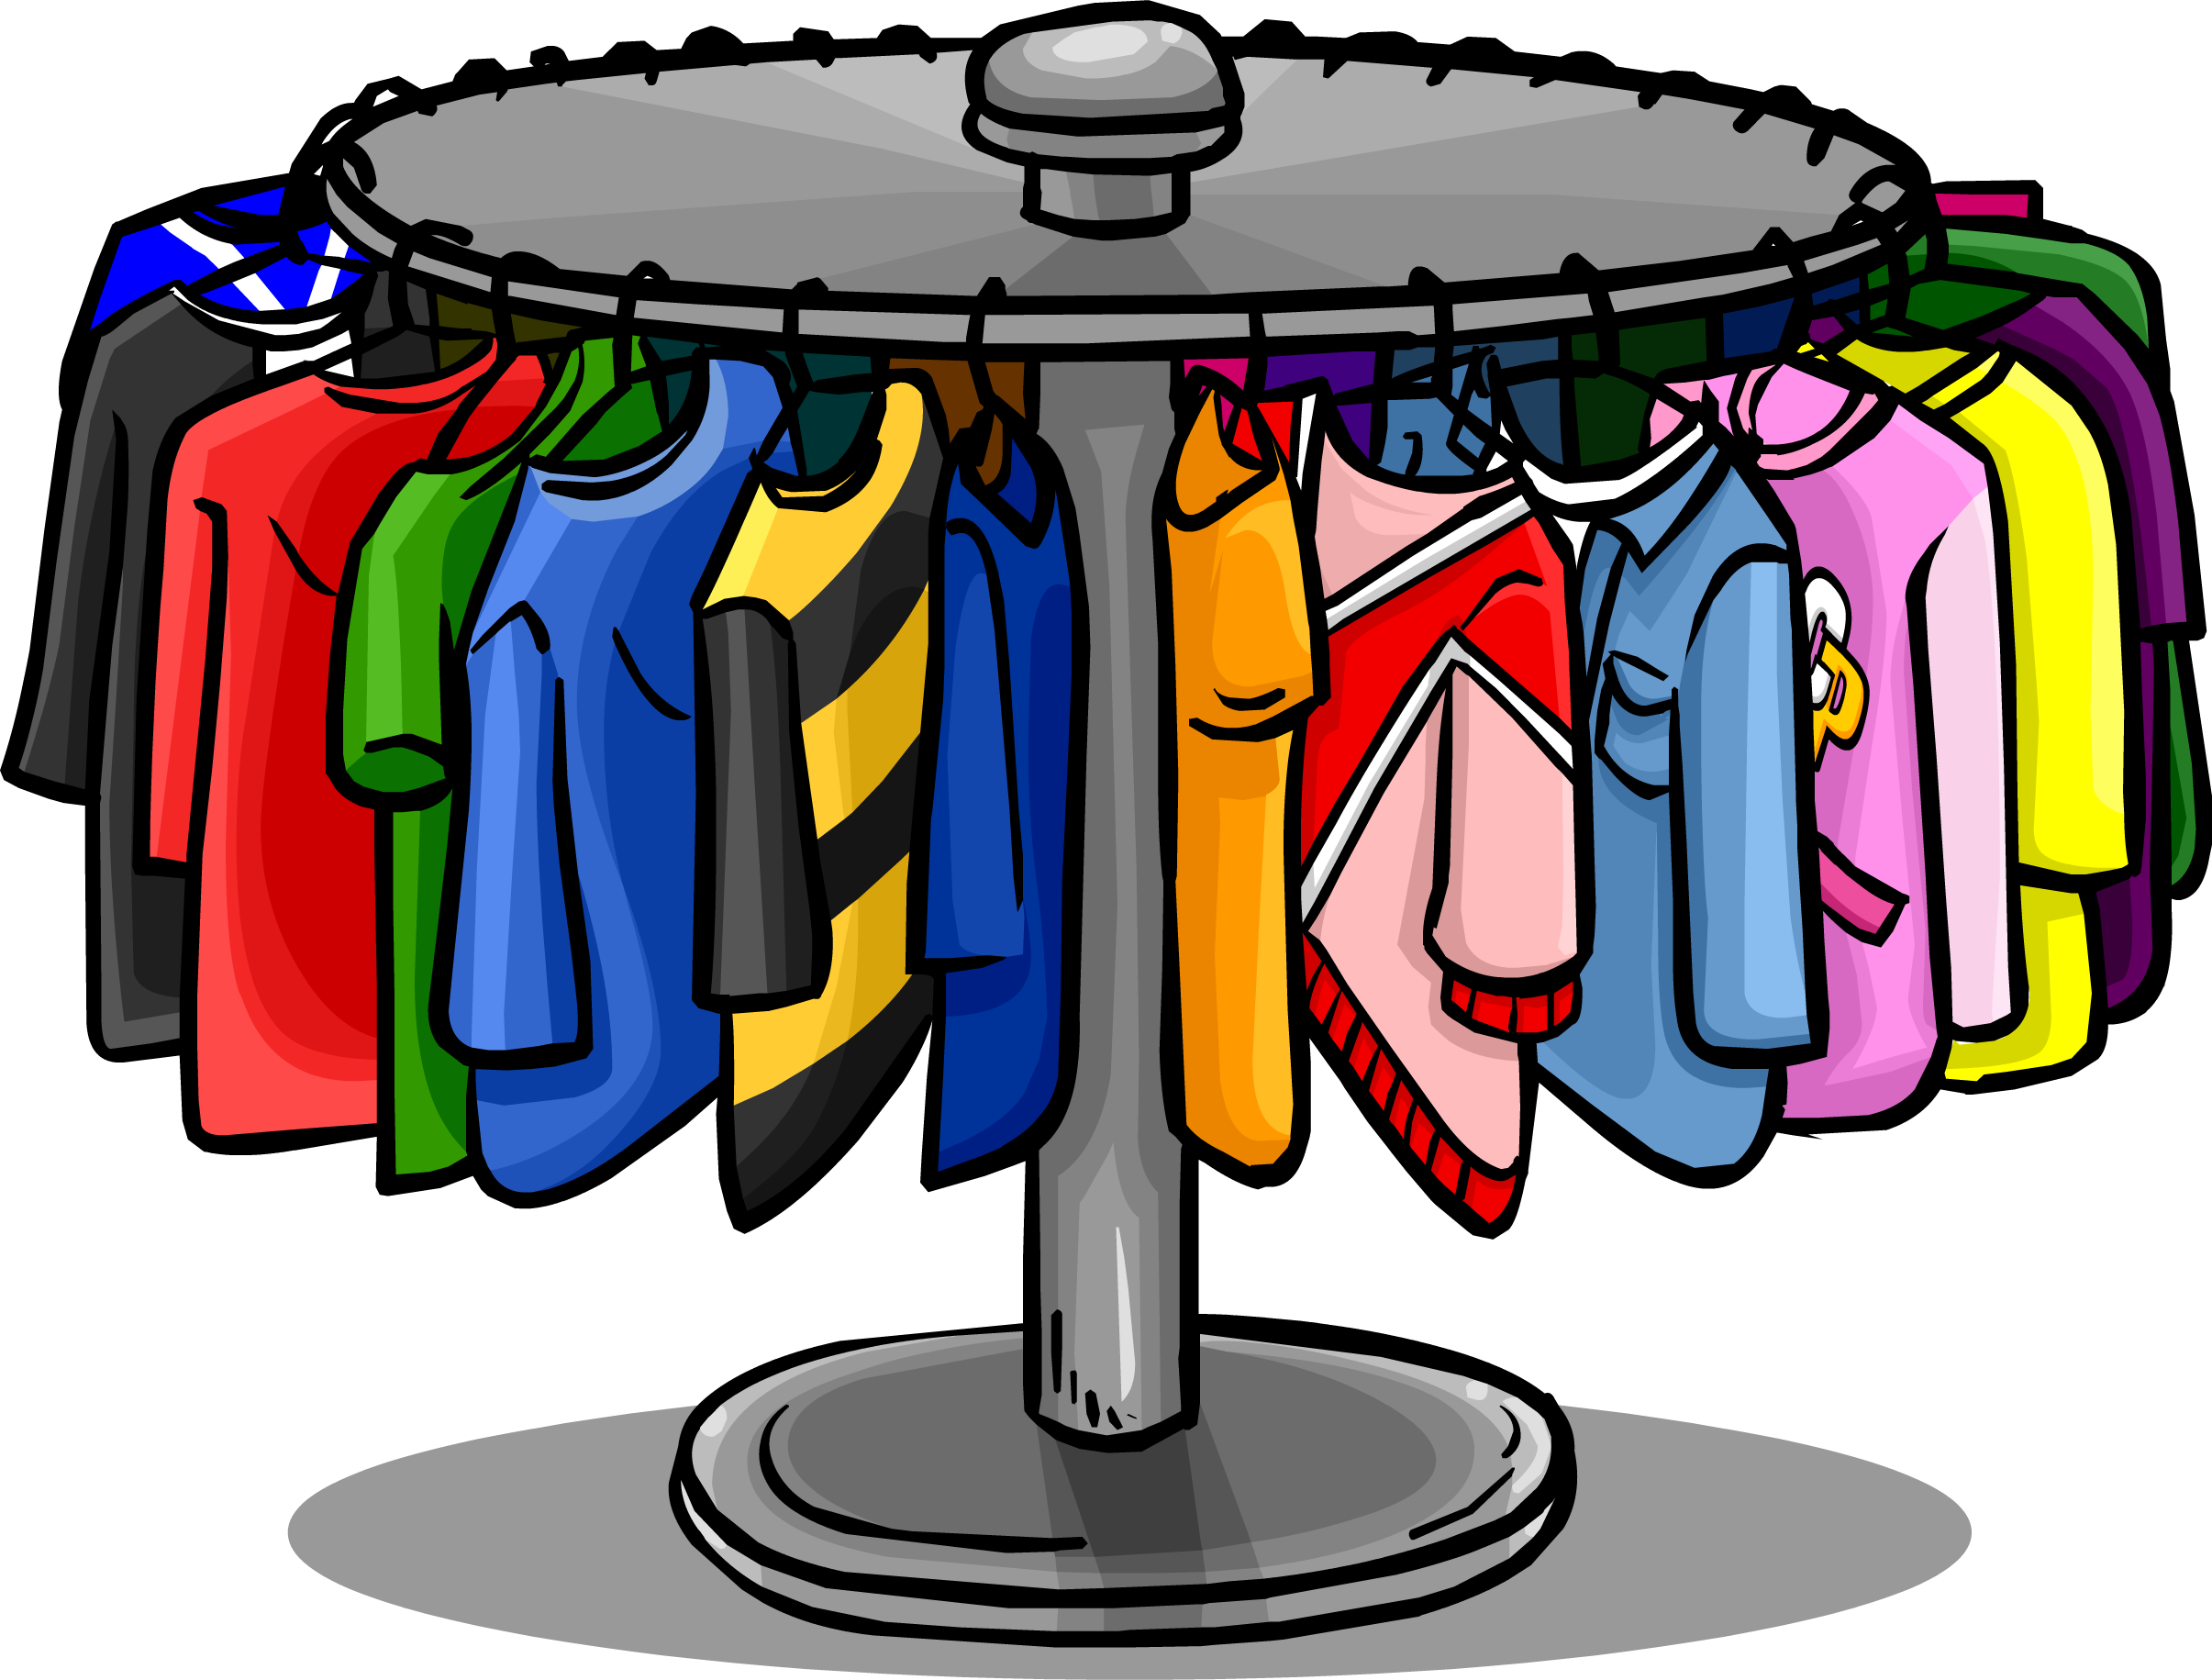 Clothing-sale-clipart